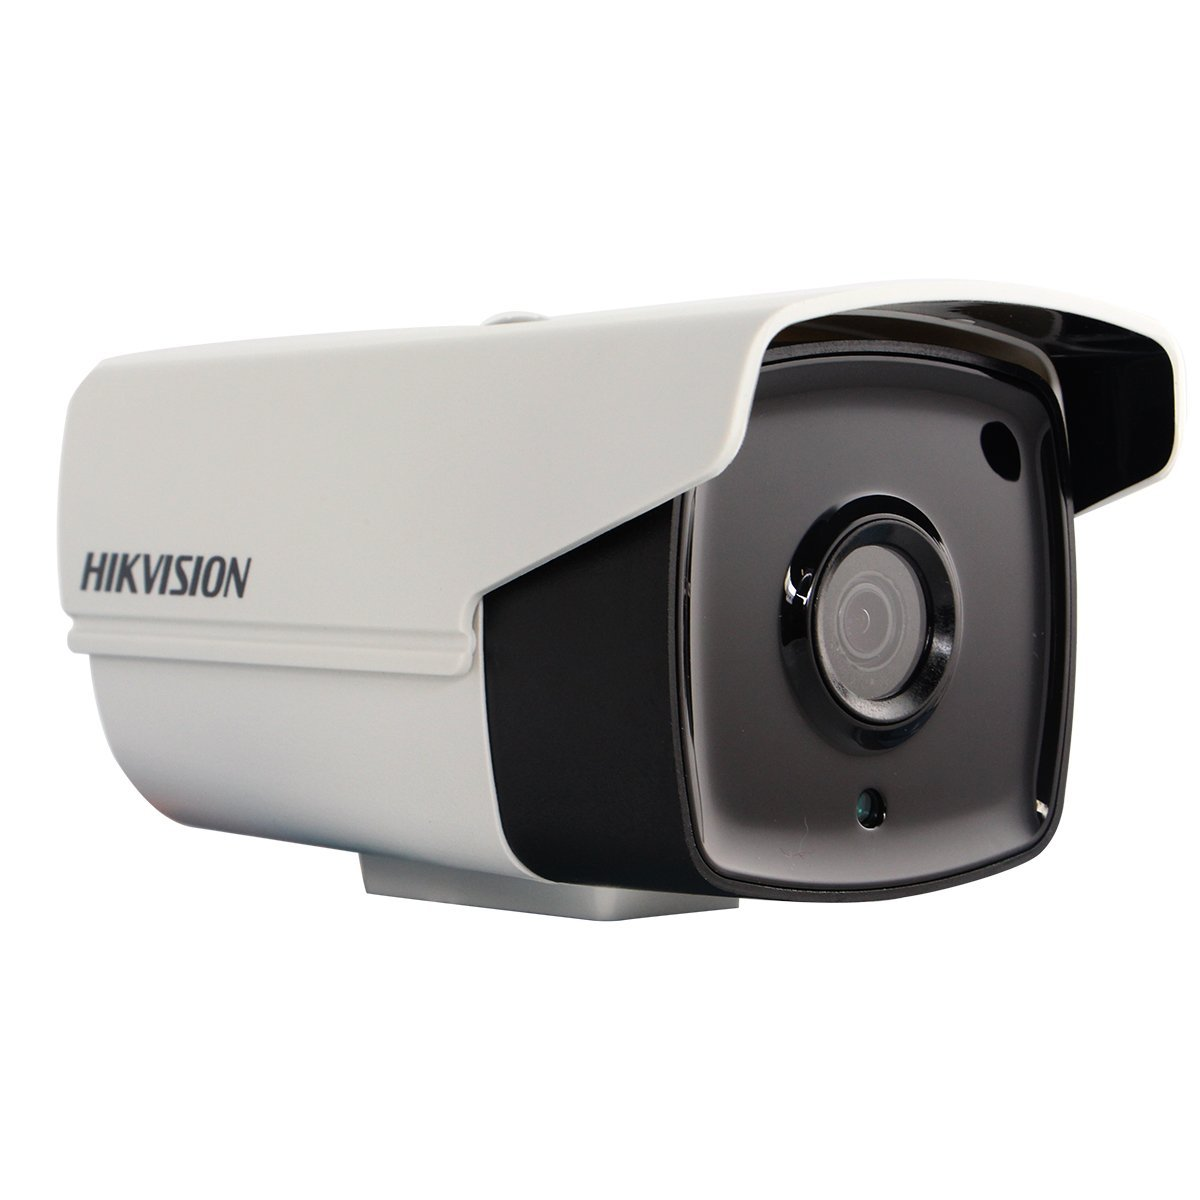 hikvision 1080p turbo hd exir bullet camera help tech co ltd. Black Bedroom Furniture Sets. Home Design Ideas